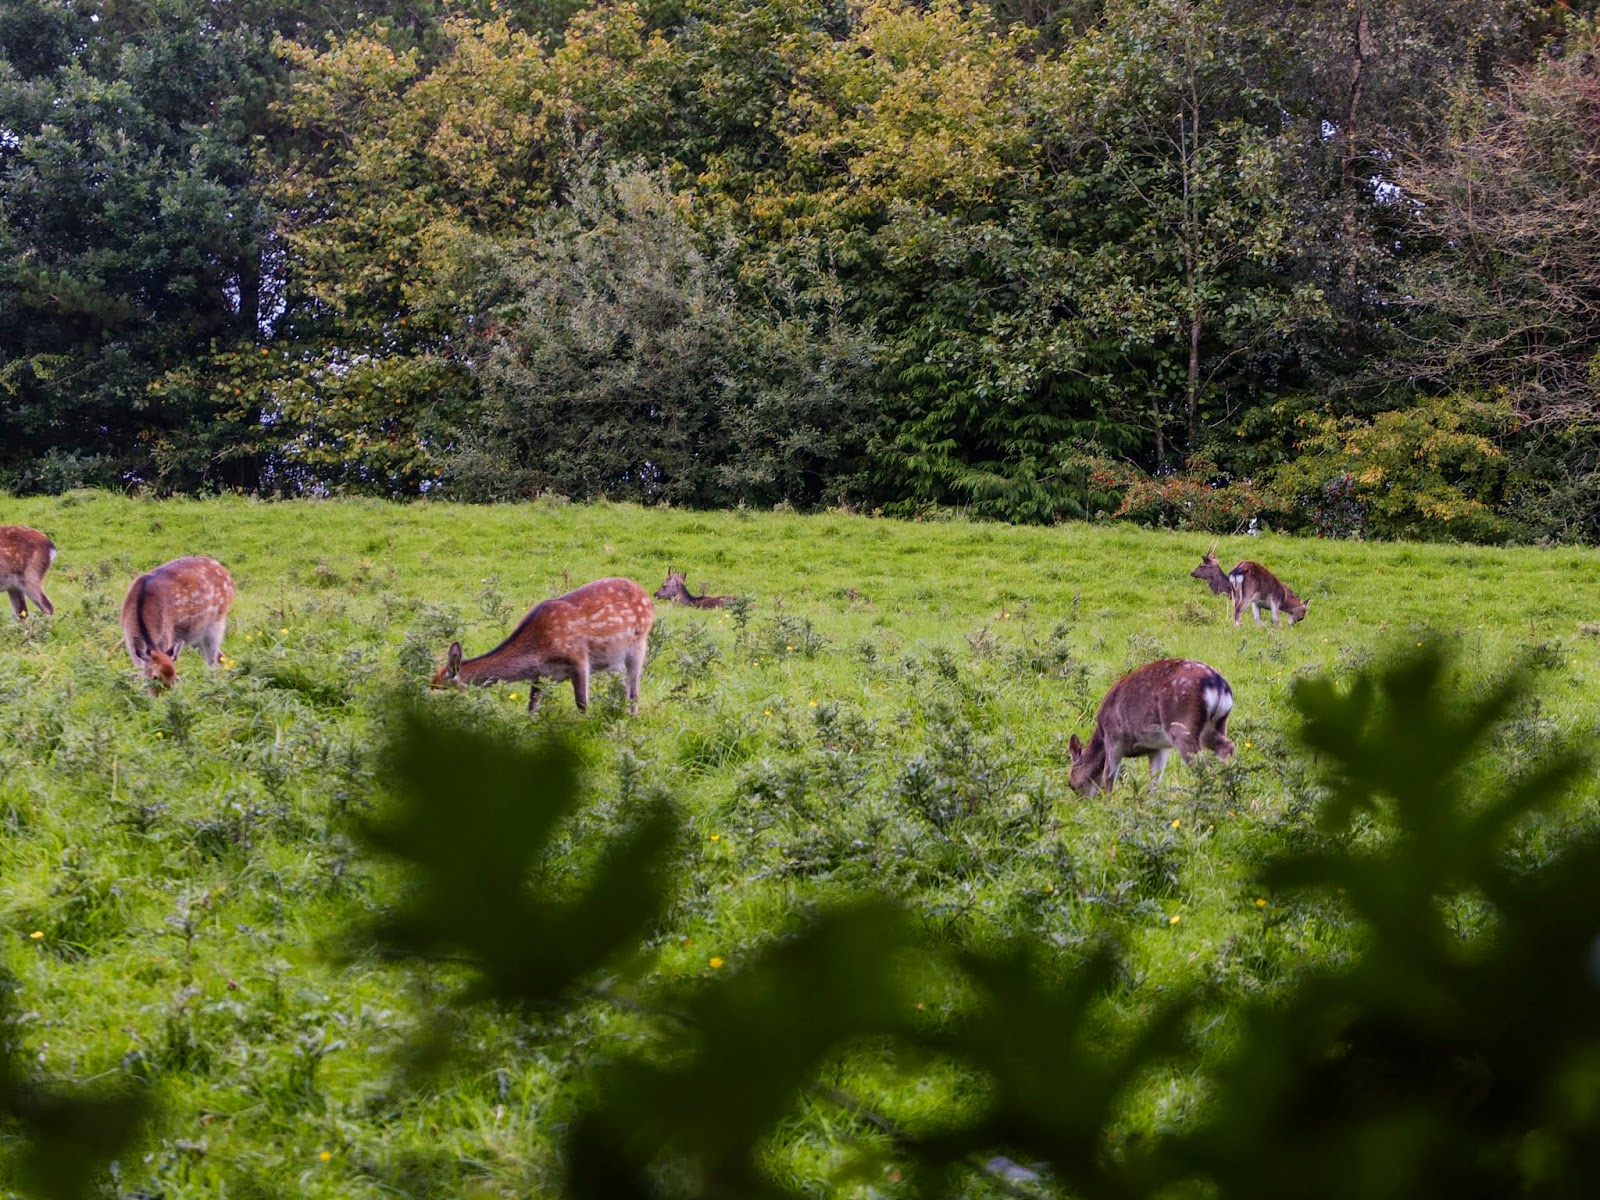 A view of does in a field captured behind trees in the Doneraile Wildlife Park.